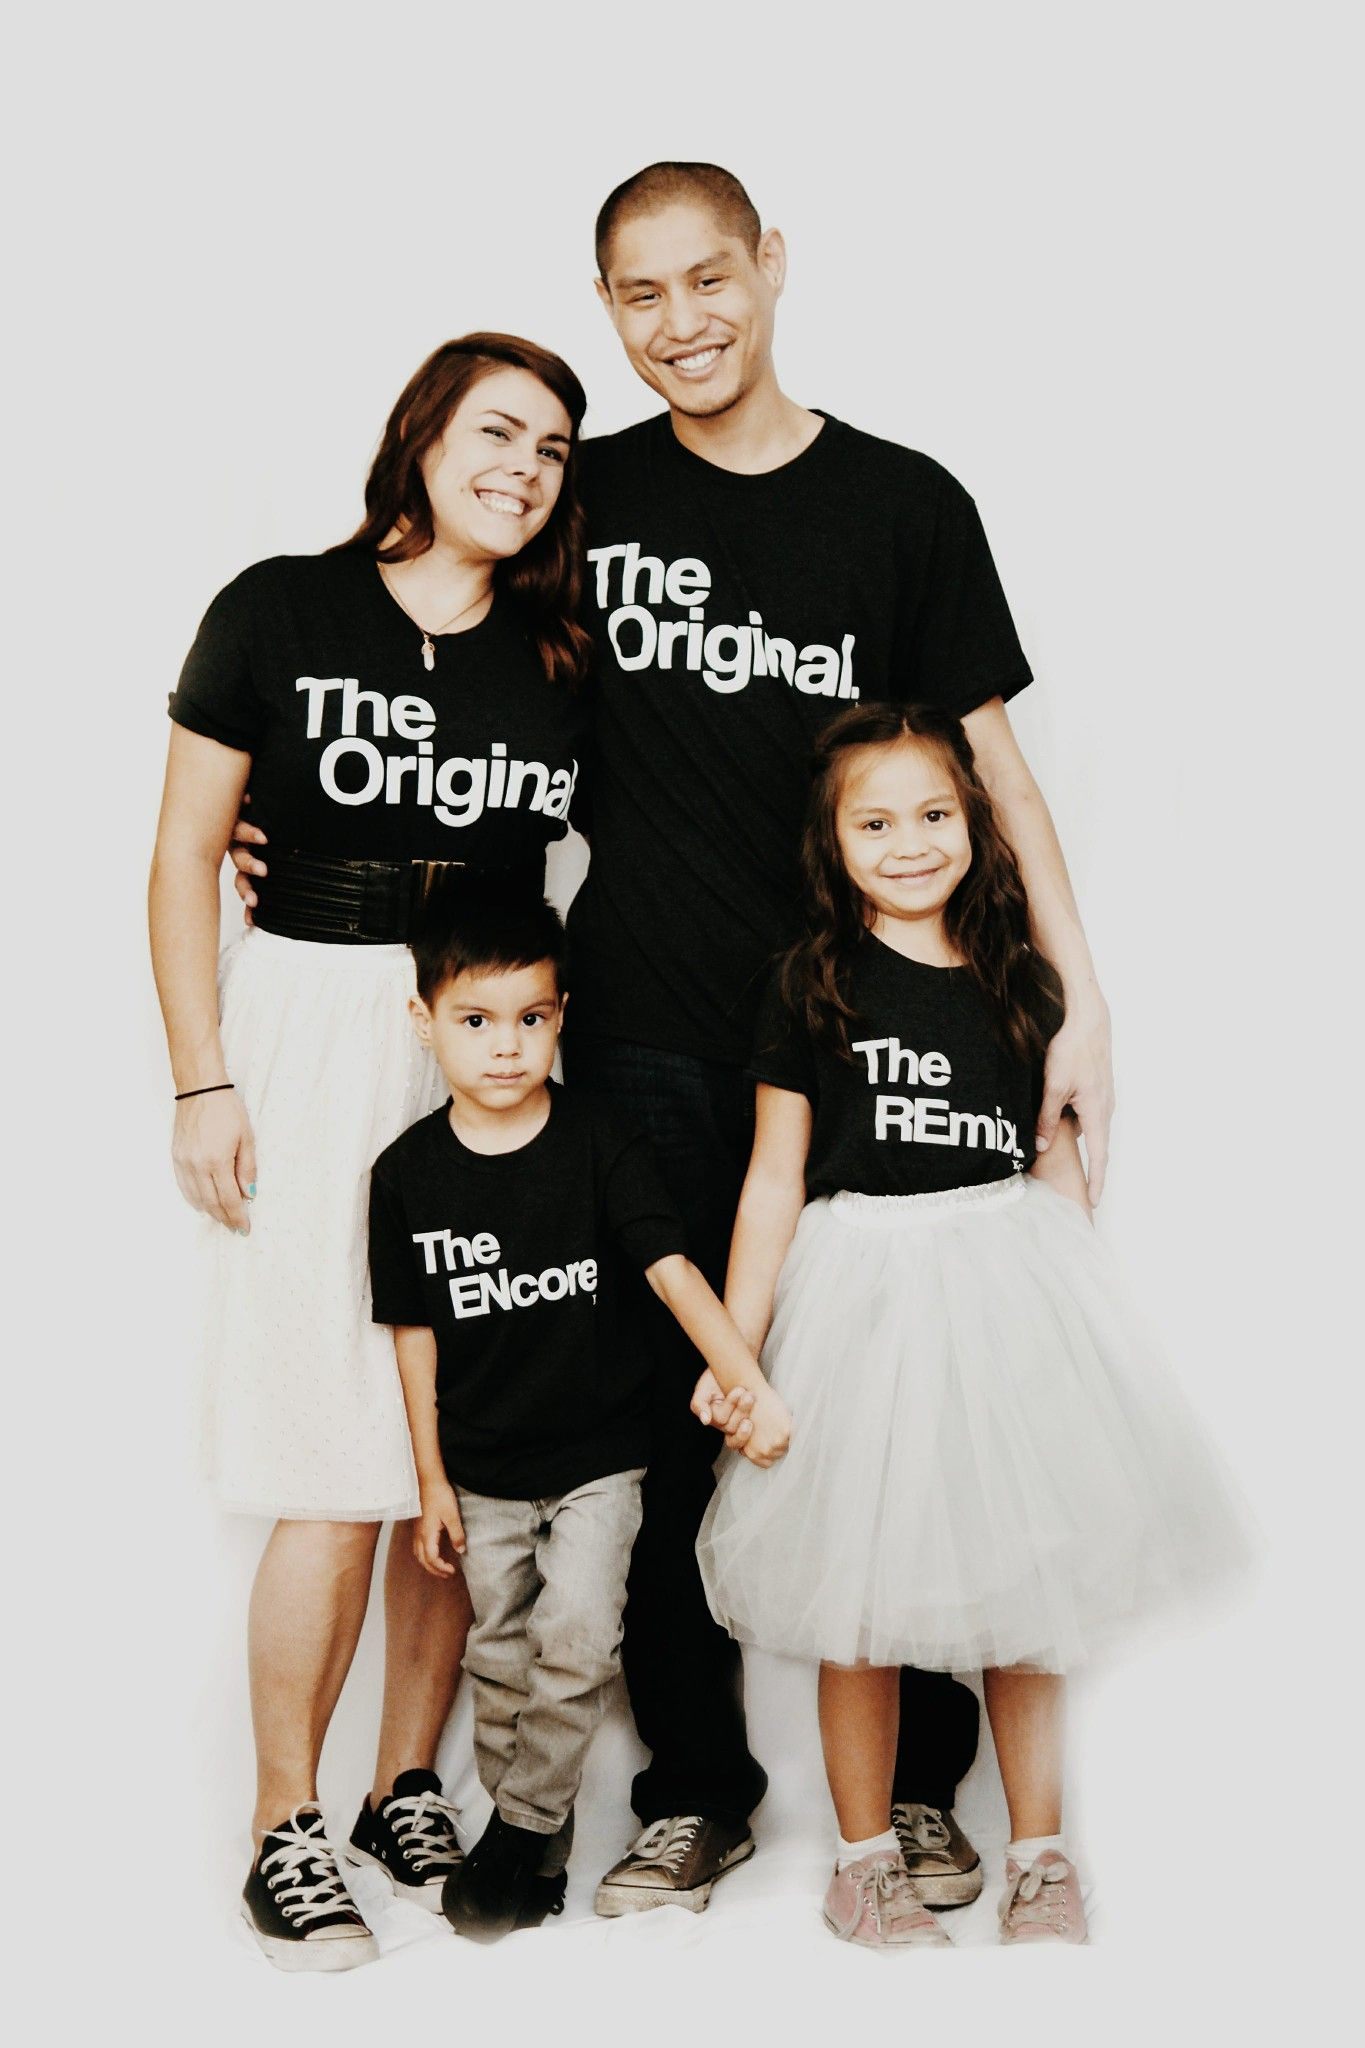 74469fe1 Matching Family Shirts: The Original, The Encore, The Remix. Family Photo